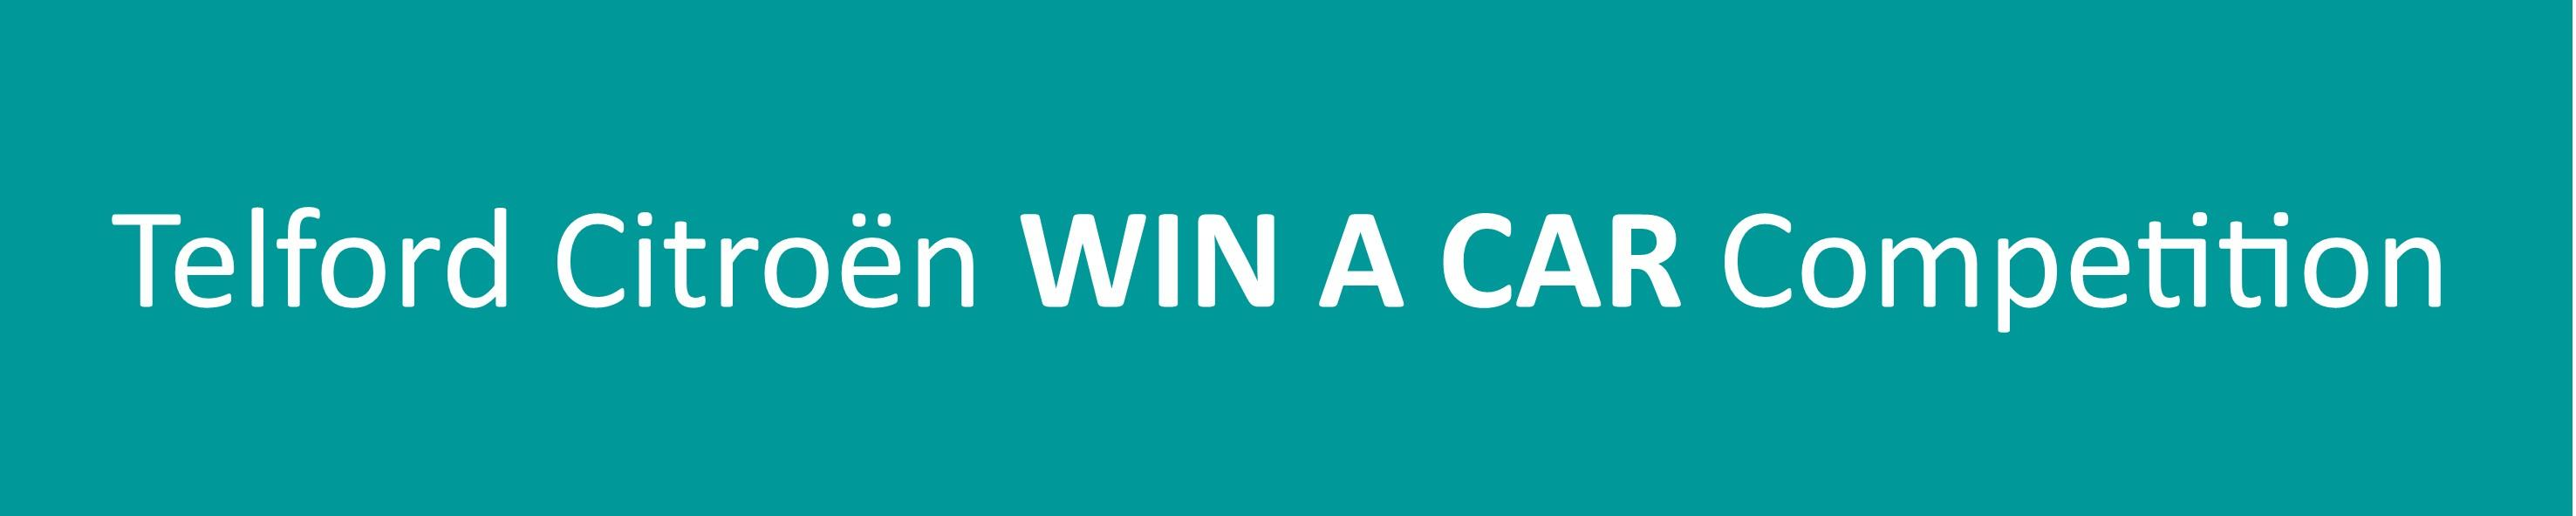 Win a Car Competotion - Budgen Motor Group